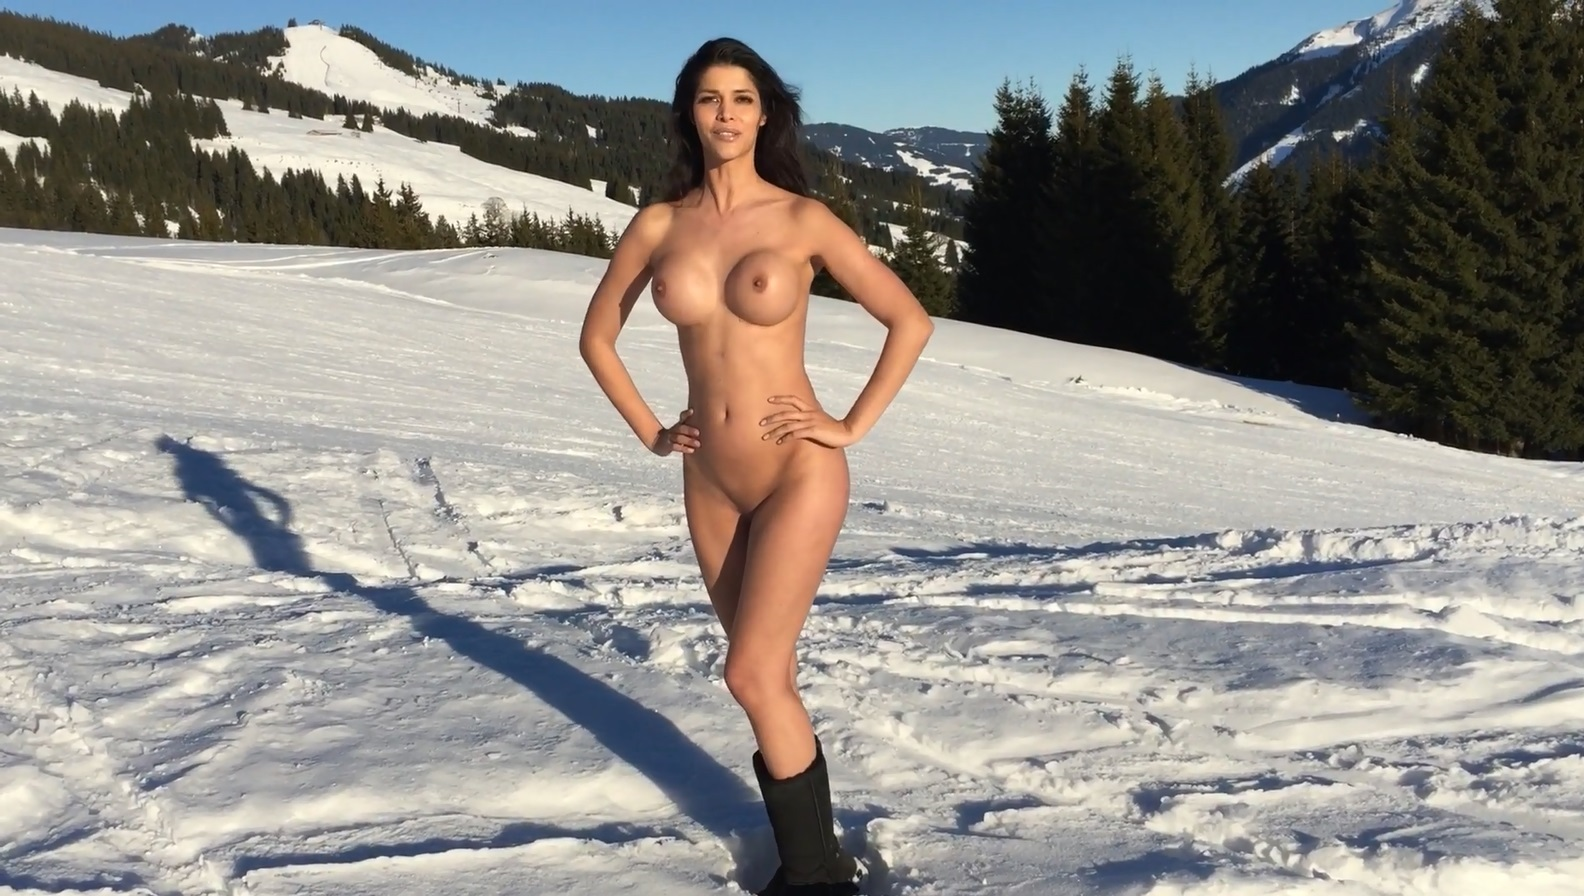 micaela-schaefer-nude-in-the-snow-3